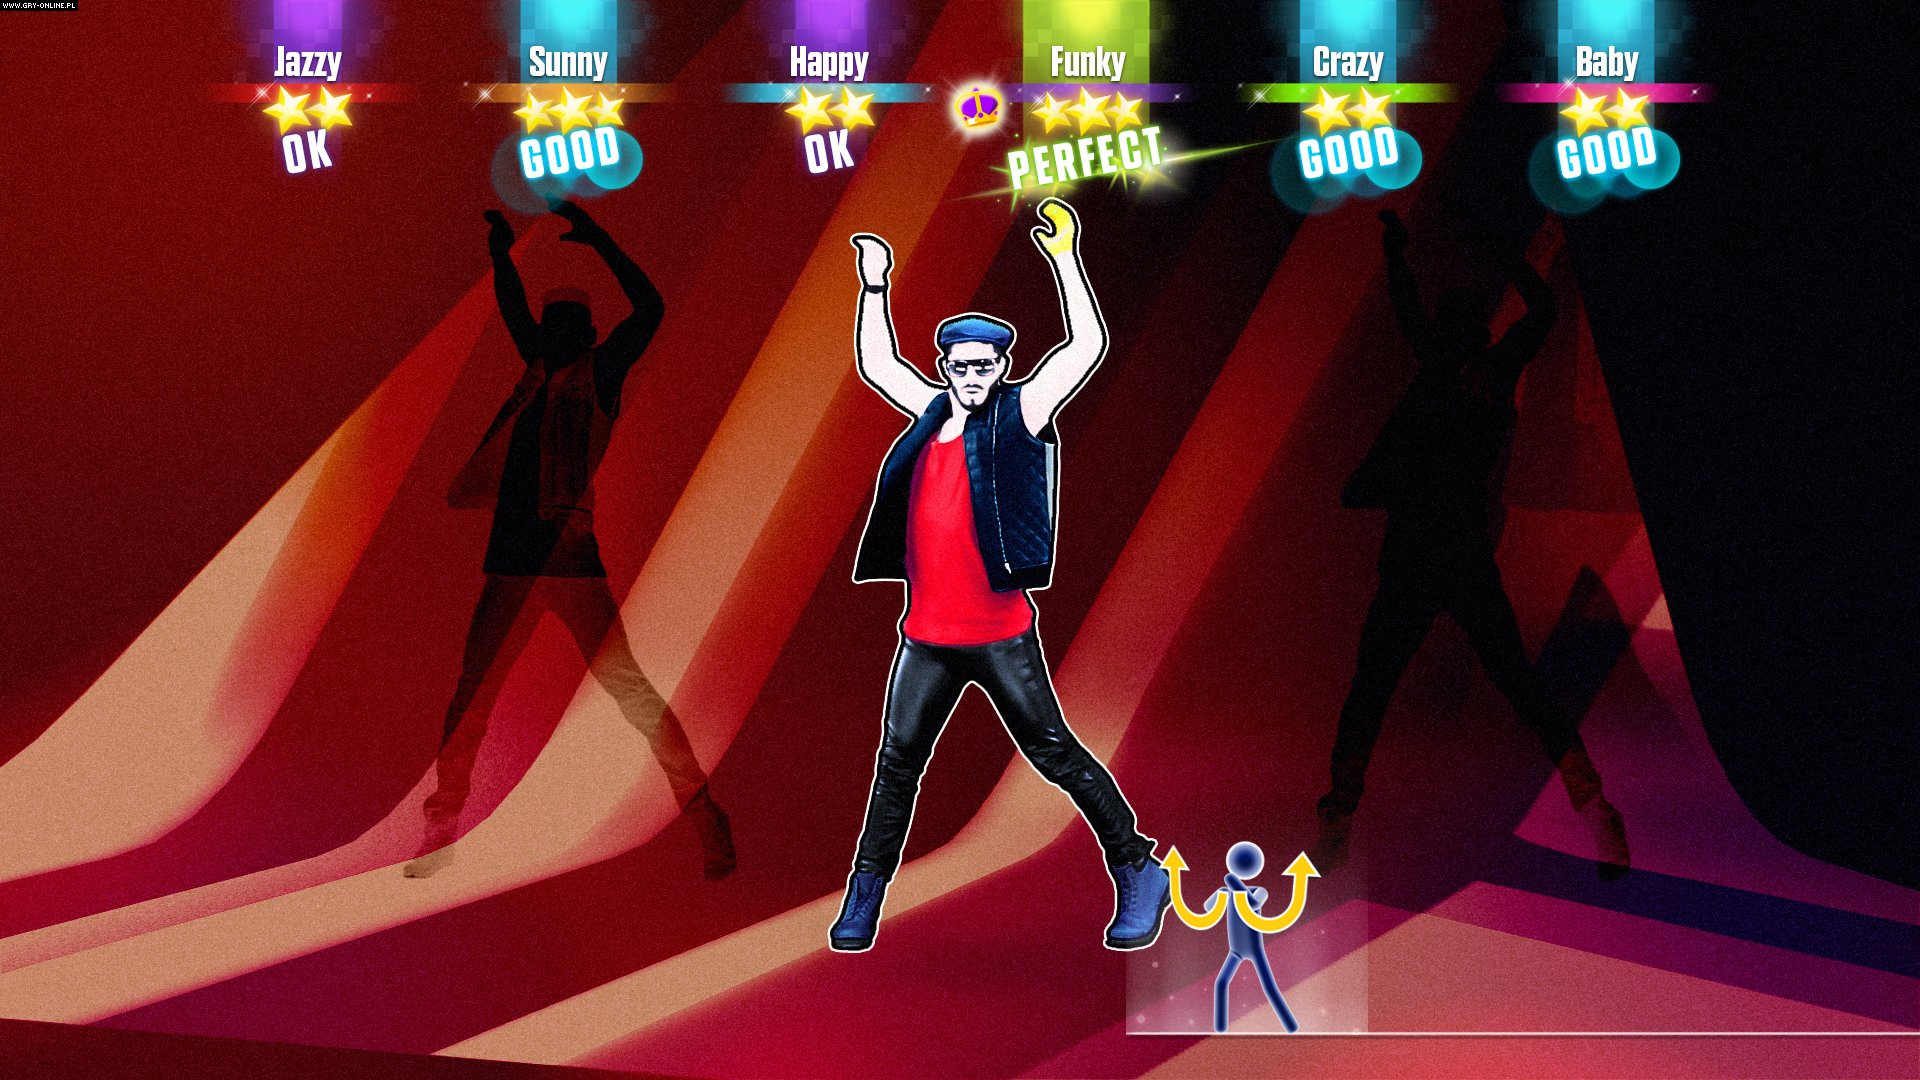 Just Dance 2016 X360, PS3, PS4, XONE Games Image 2/76, Ubisoft